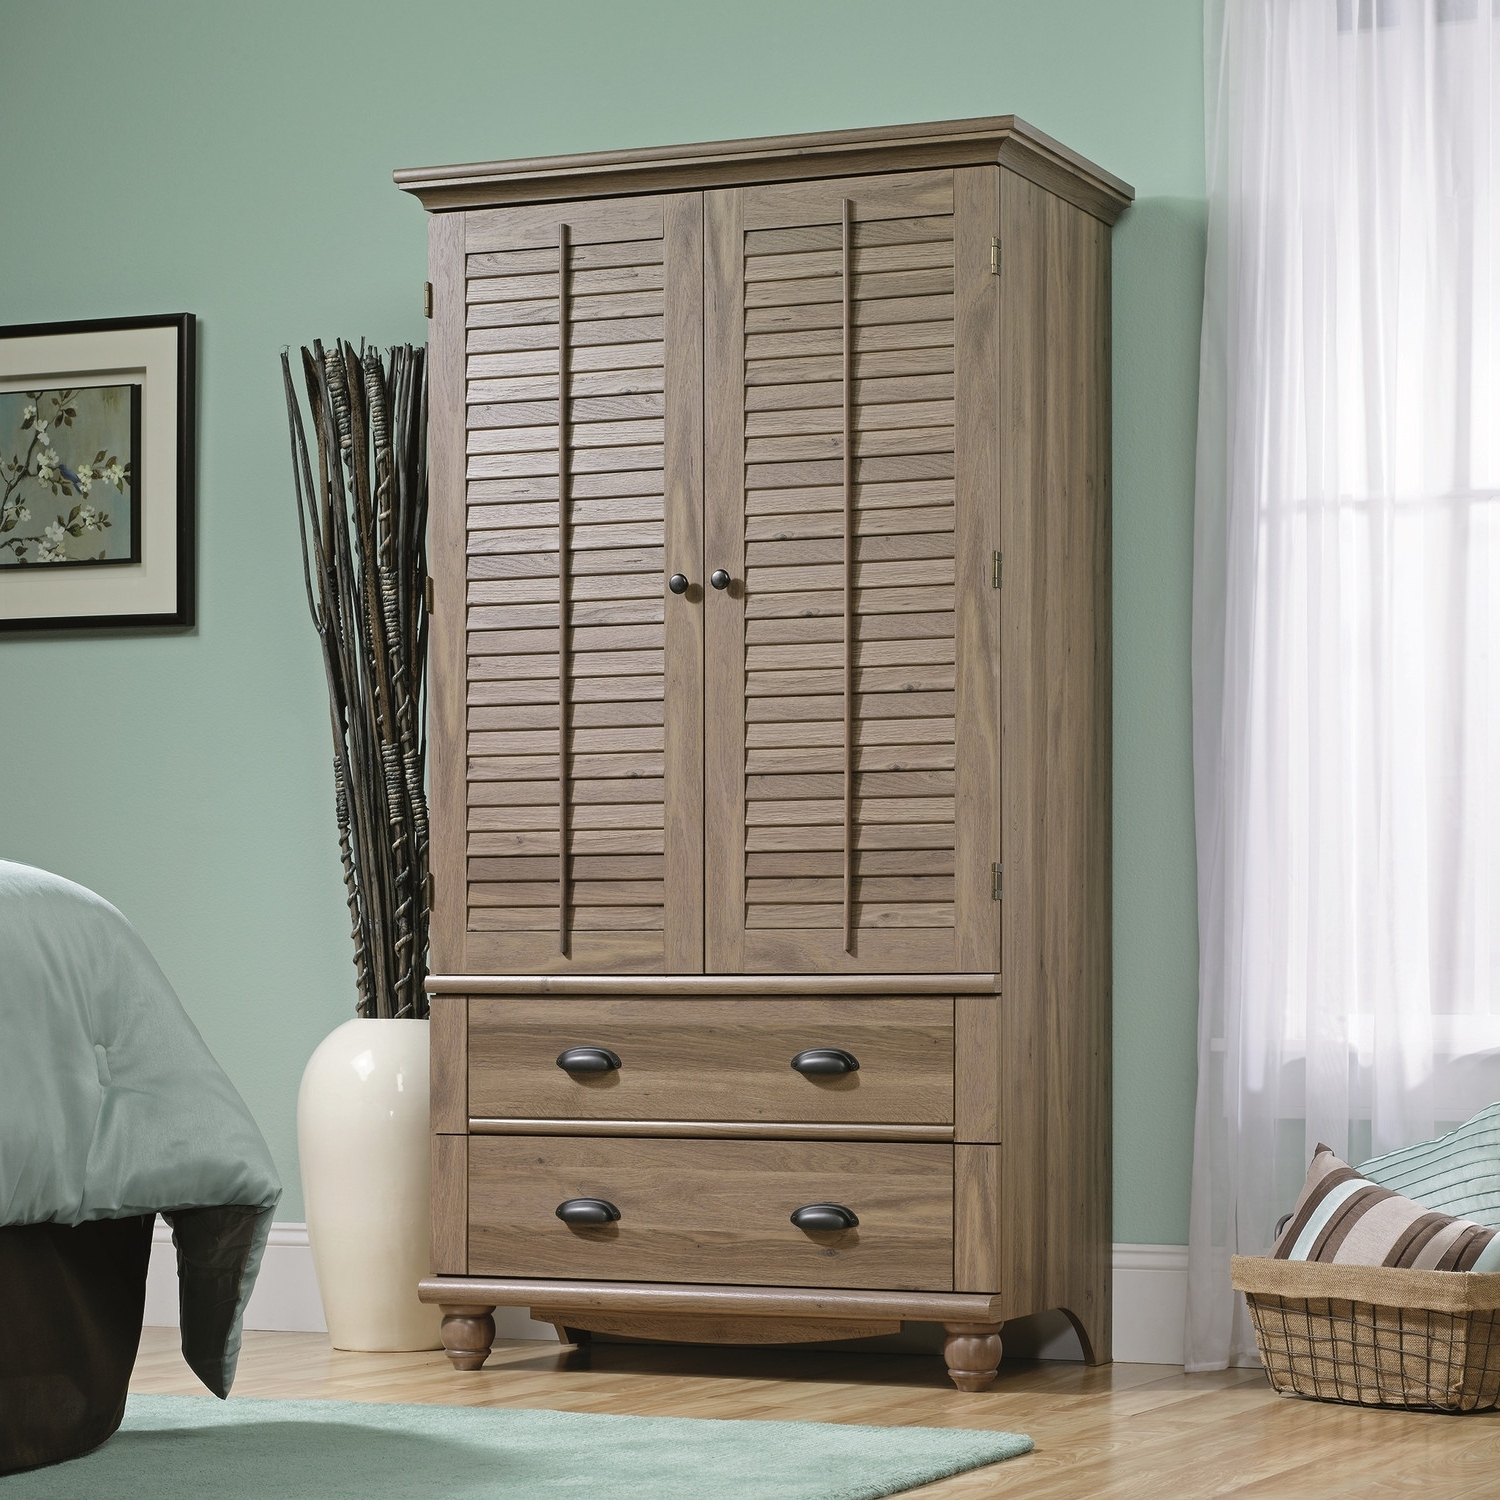 Widely Used Wicker Armoire Wardrobes Inside Bedroom: Antique Interior Storage Design With Wardrobe Armoire (View 14 of 15)